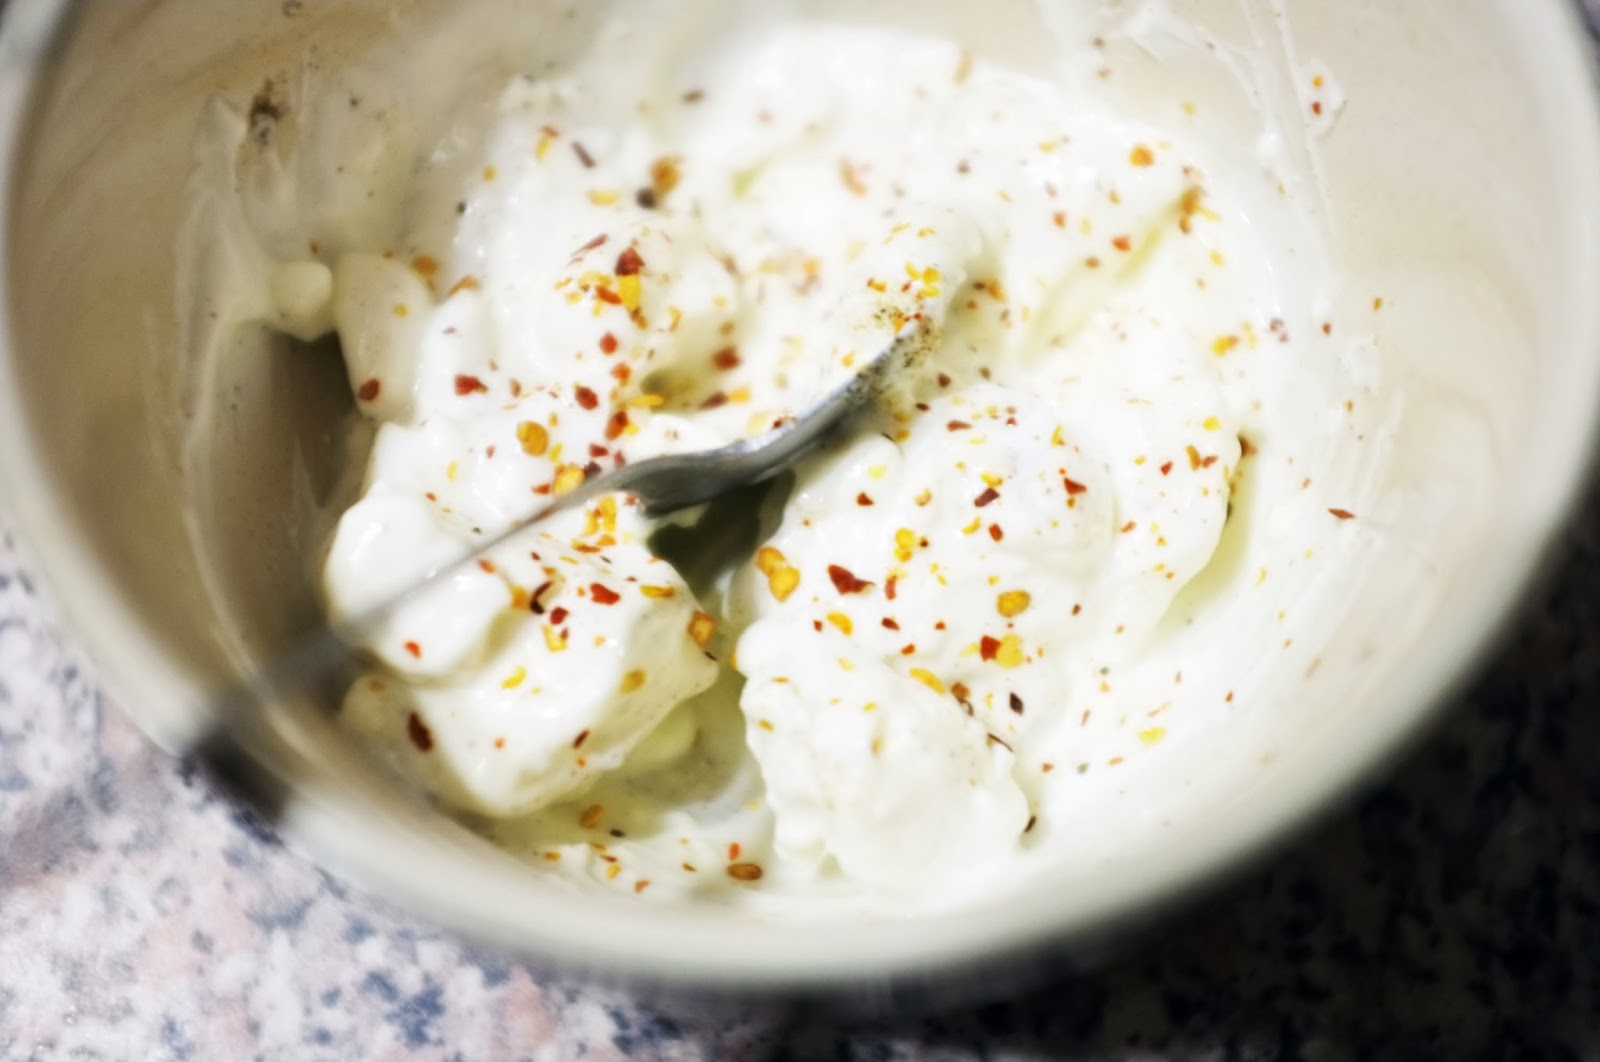 feta cheese dip with chilli flakes feta cheese dip 3